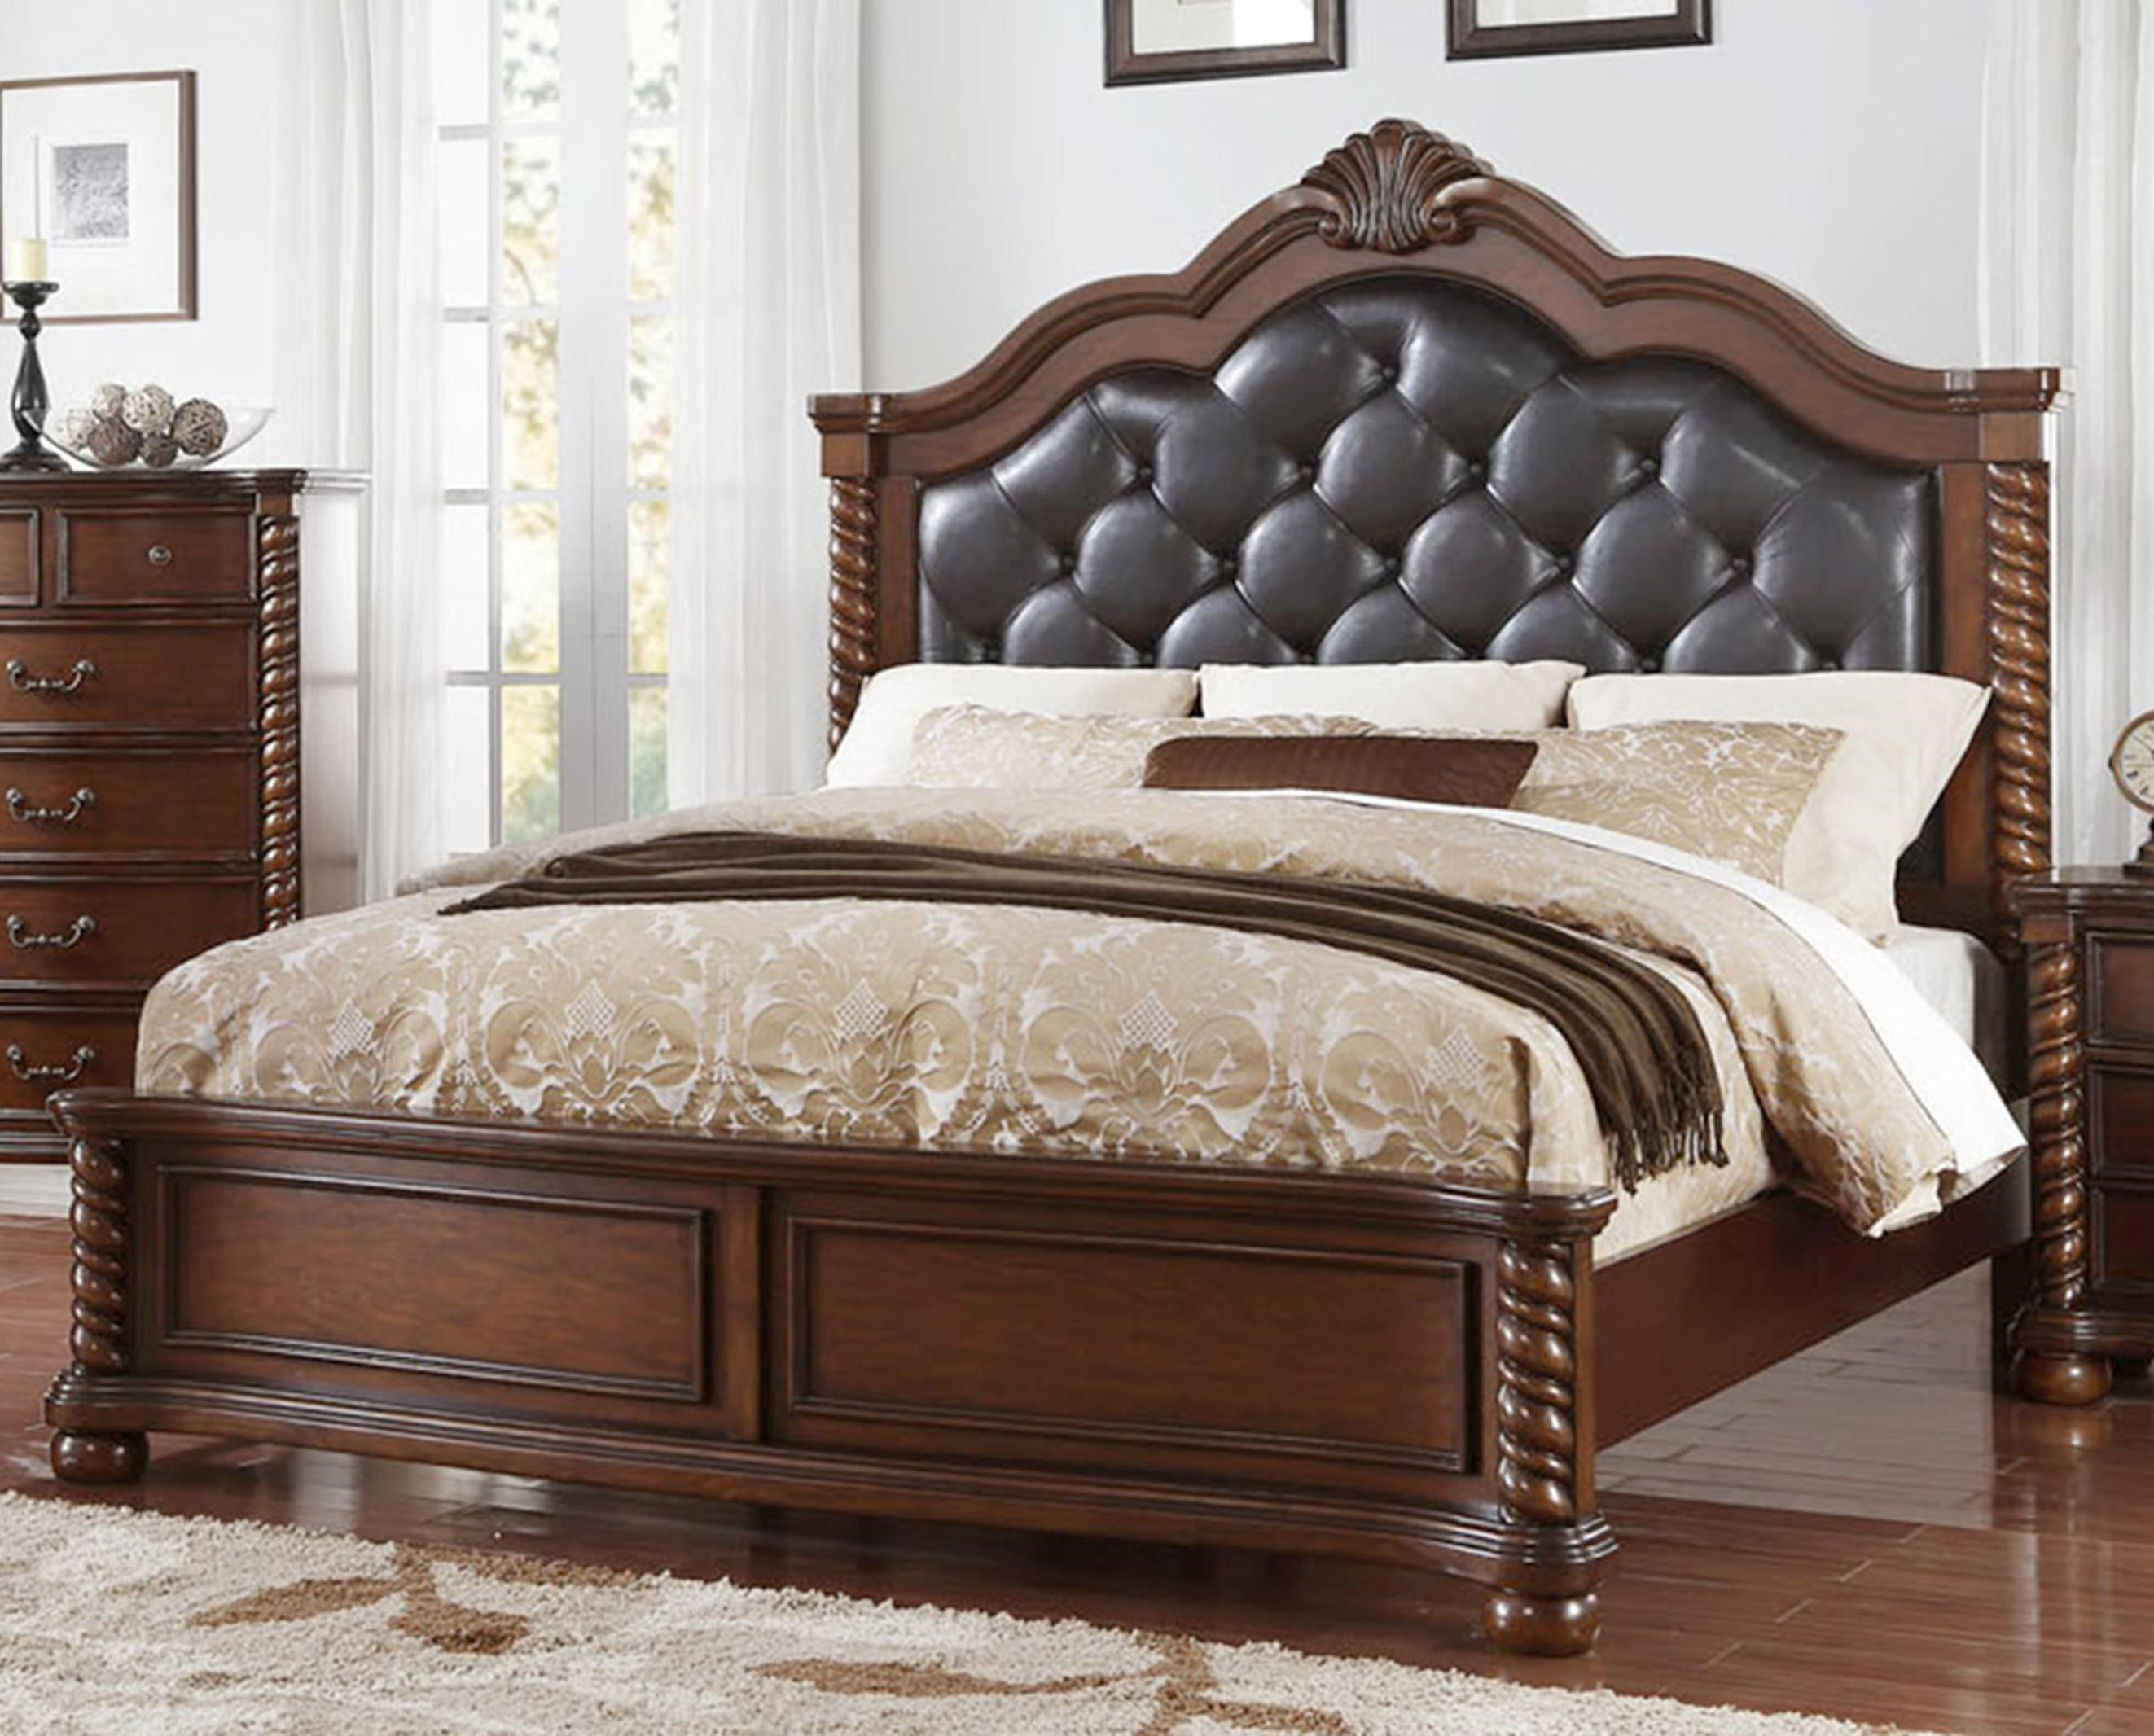 Queen Bed with Diamond Tufted Headbo